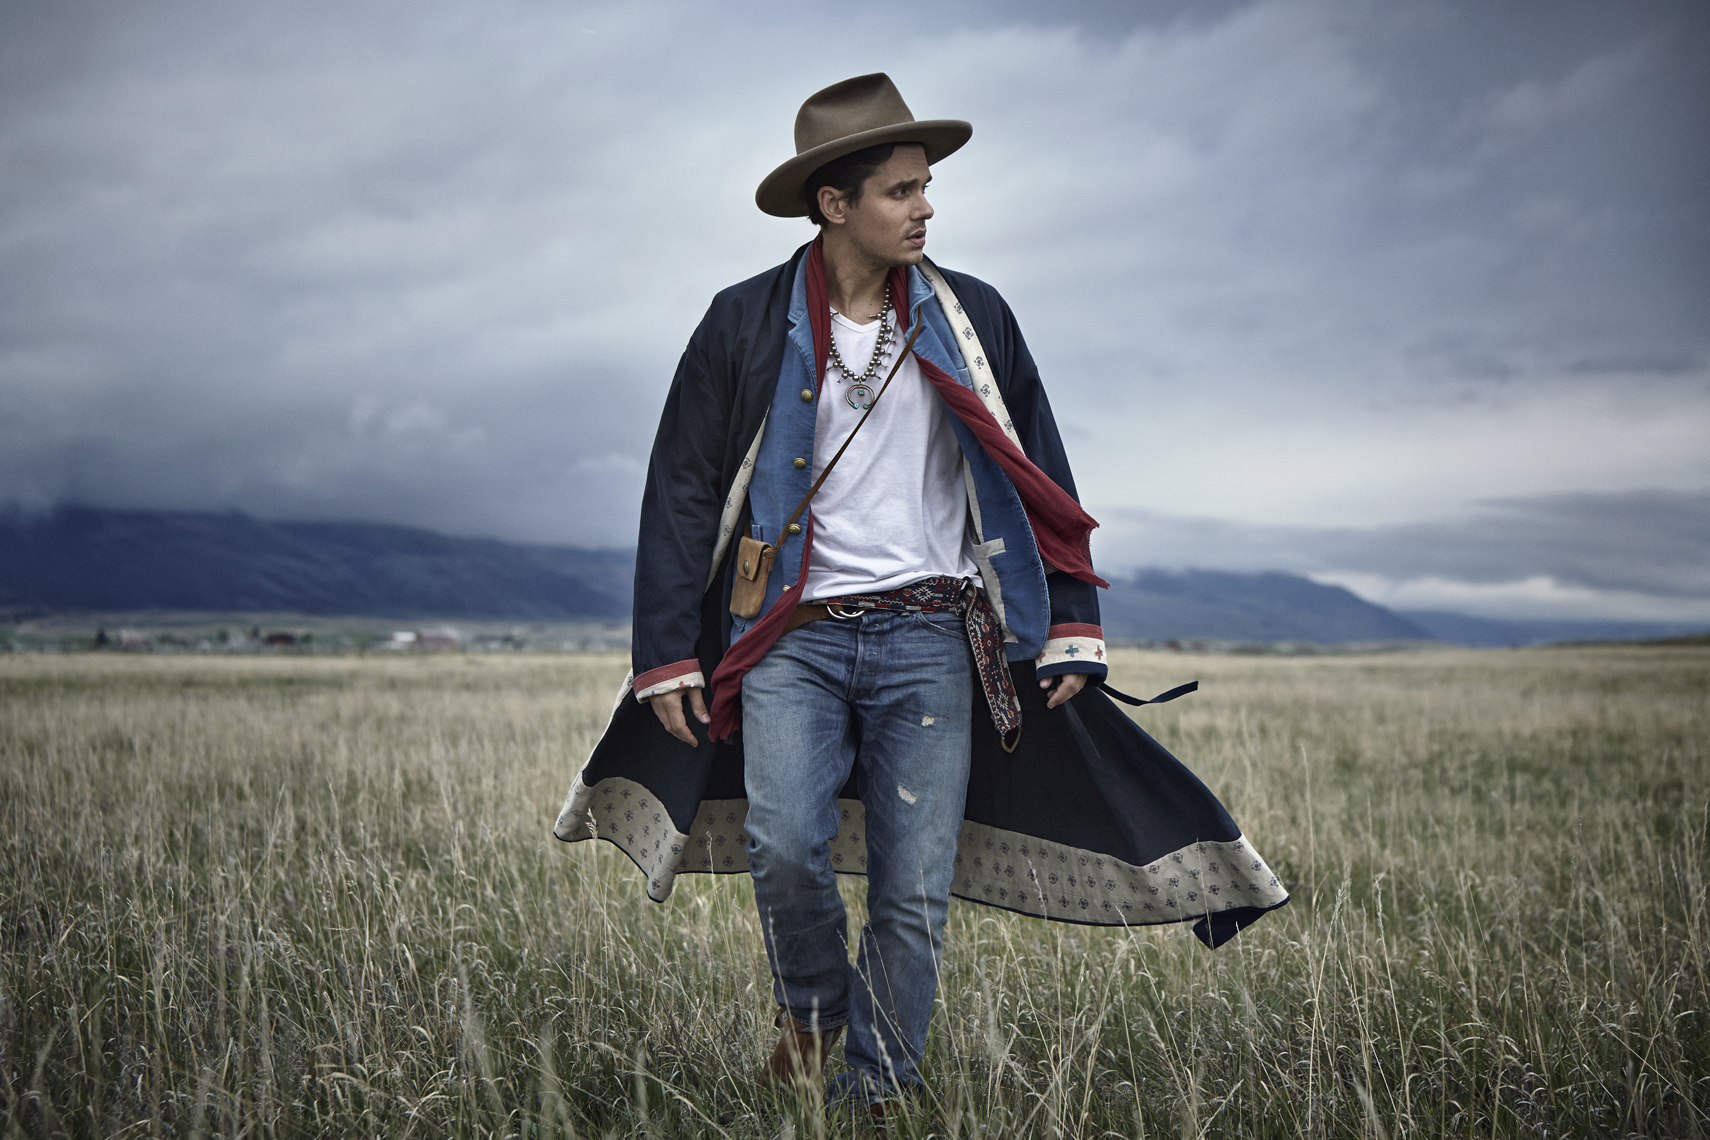 wJohn_Mayer_Walking_Field_052313_1237_1b